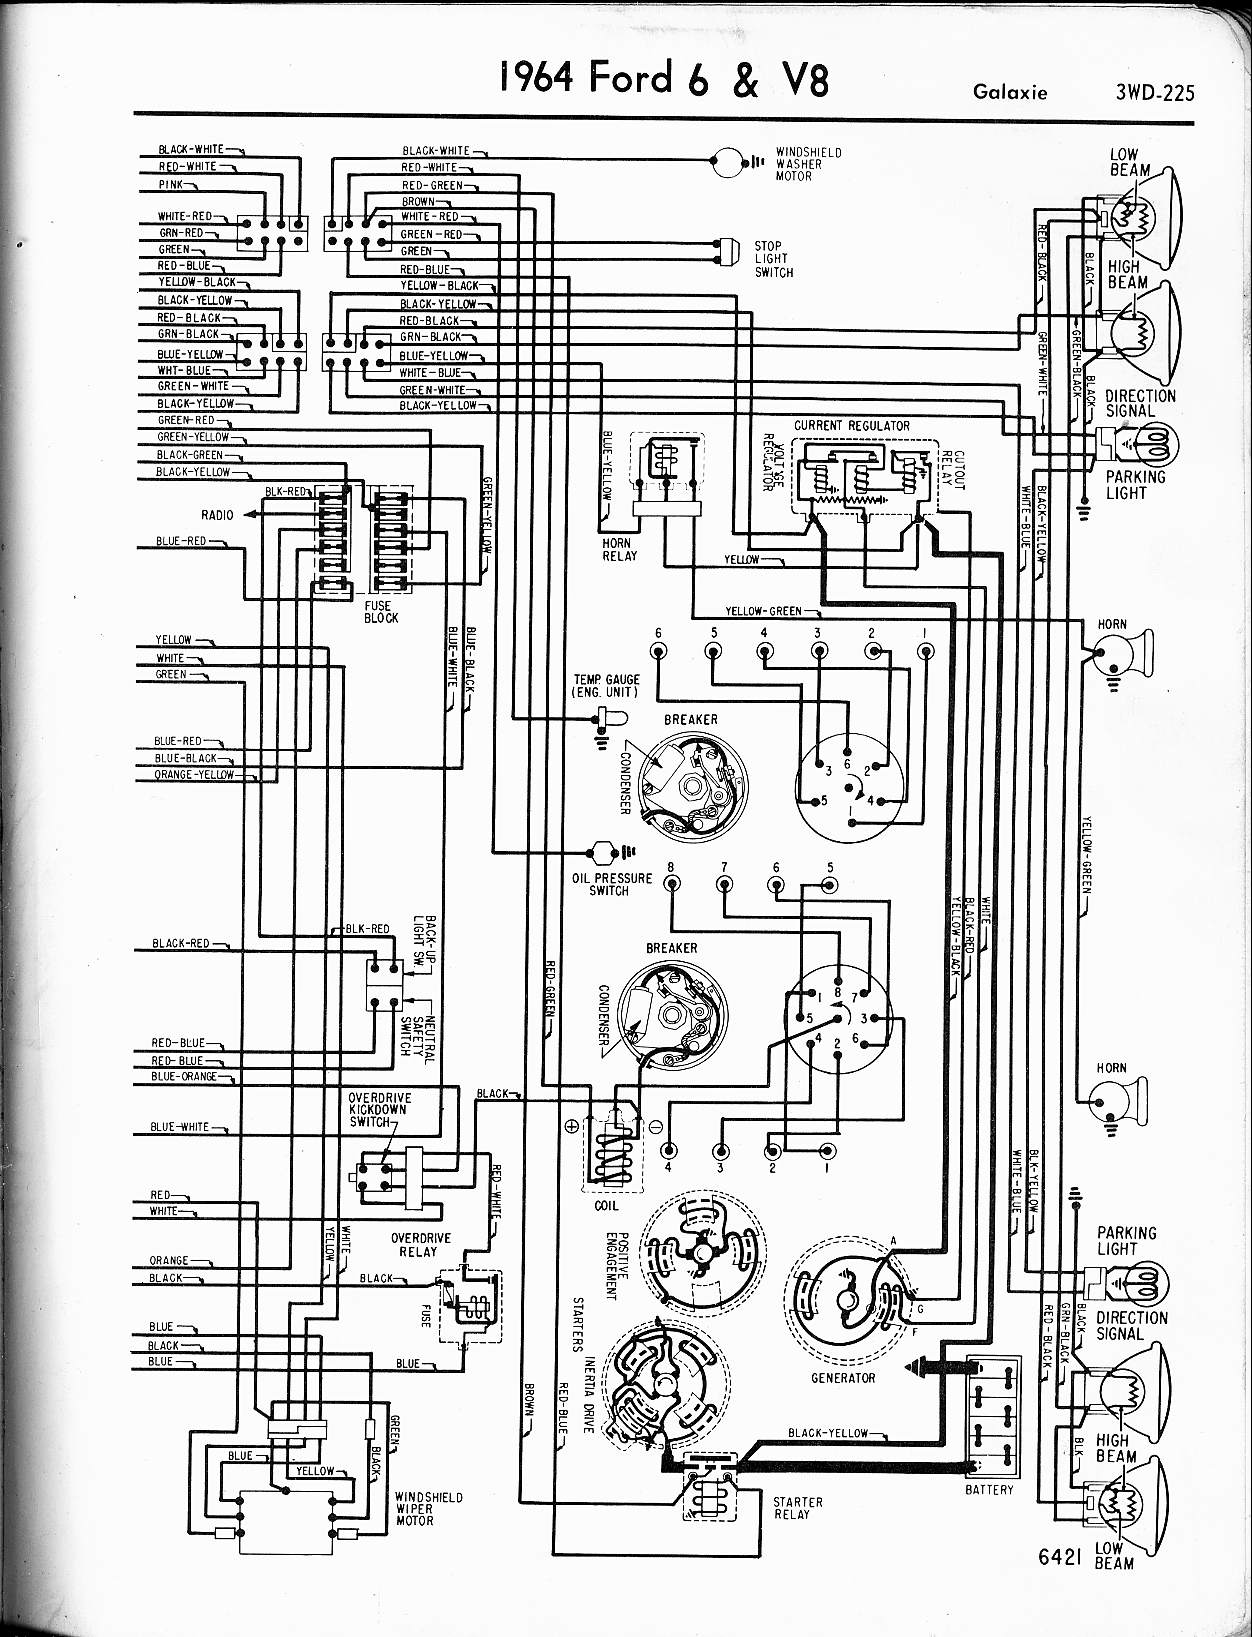 57 65 Ford Wiring Diagrams Club Car Manual Wire 1964 6 V8 Galaxie Right